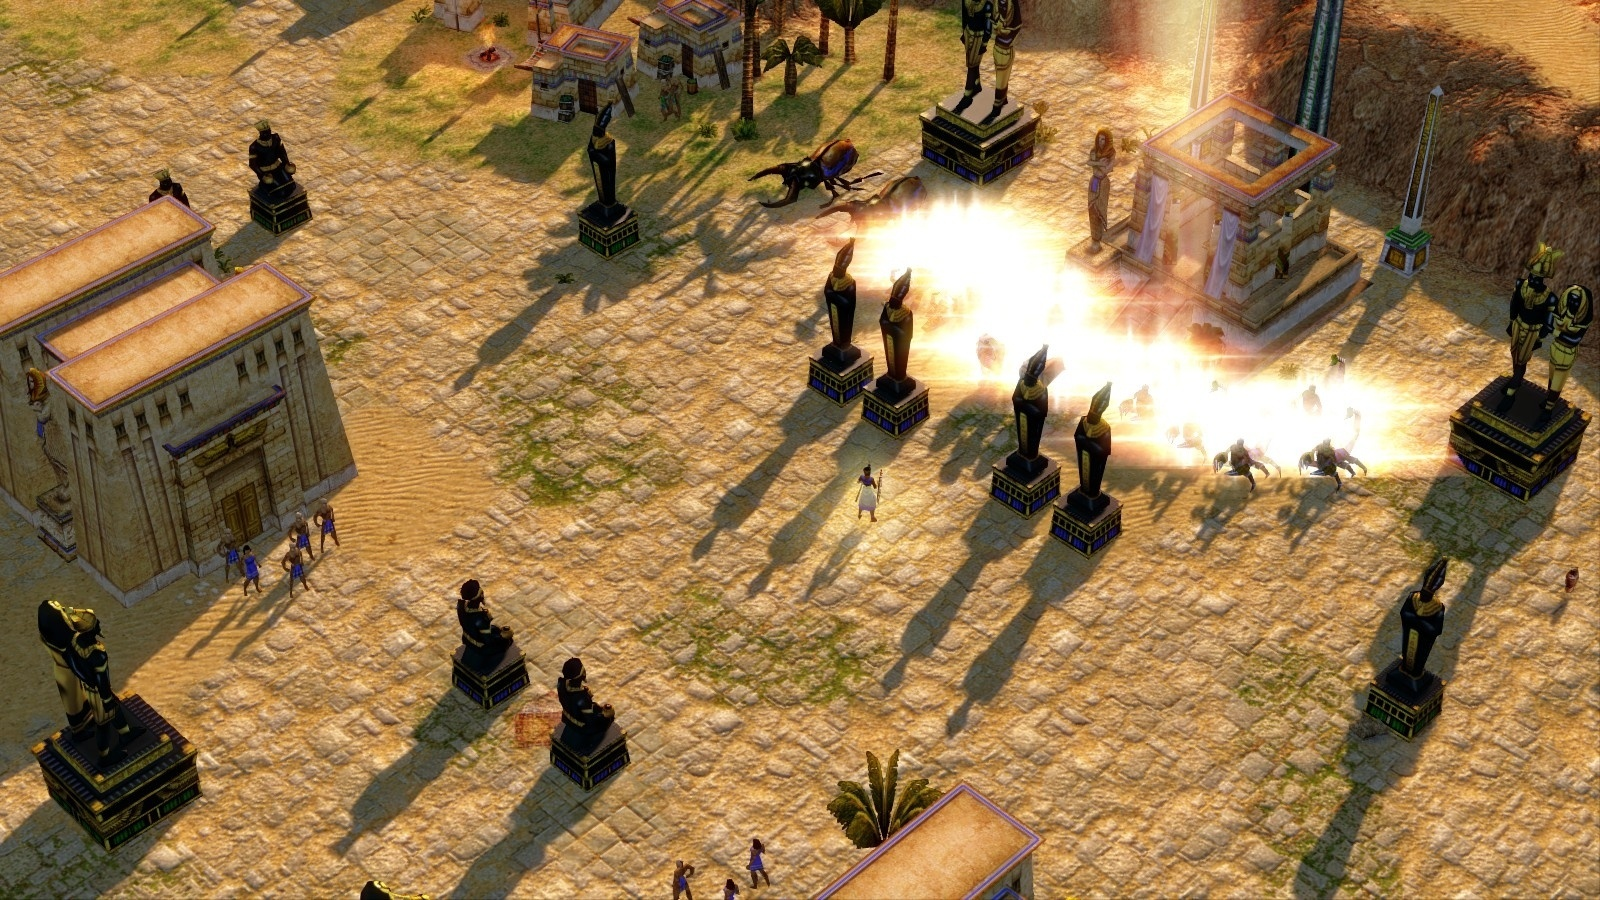 WatFile.com Download Free Details about Age of Mythology Extended Edition - STEAM PC Game (NO CD